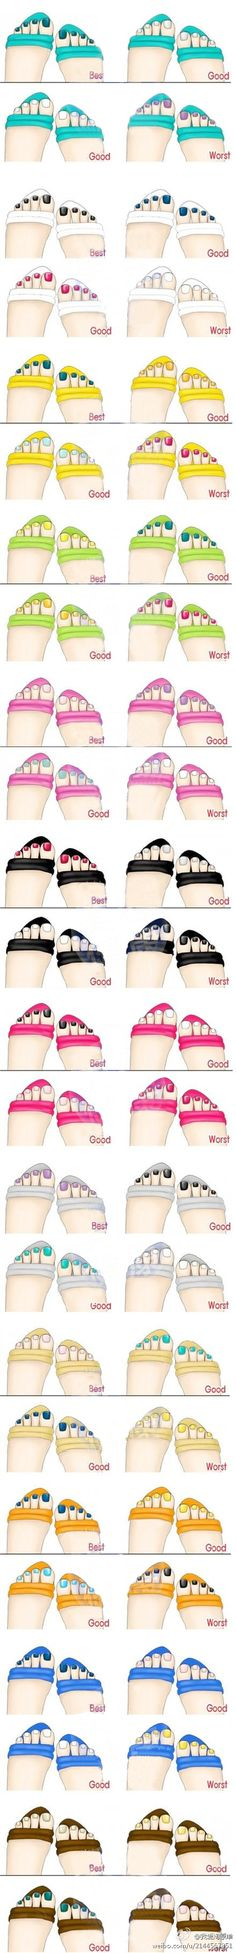 Toenail and flip-flop colour guide #nail #nails #nailart